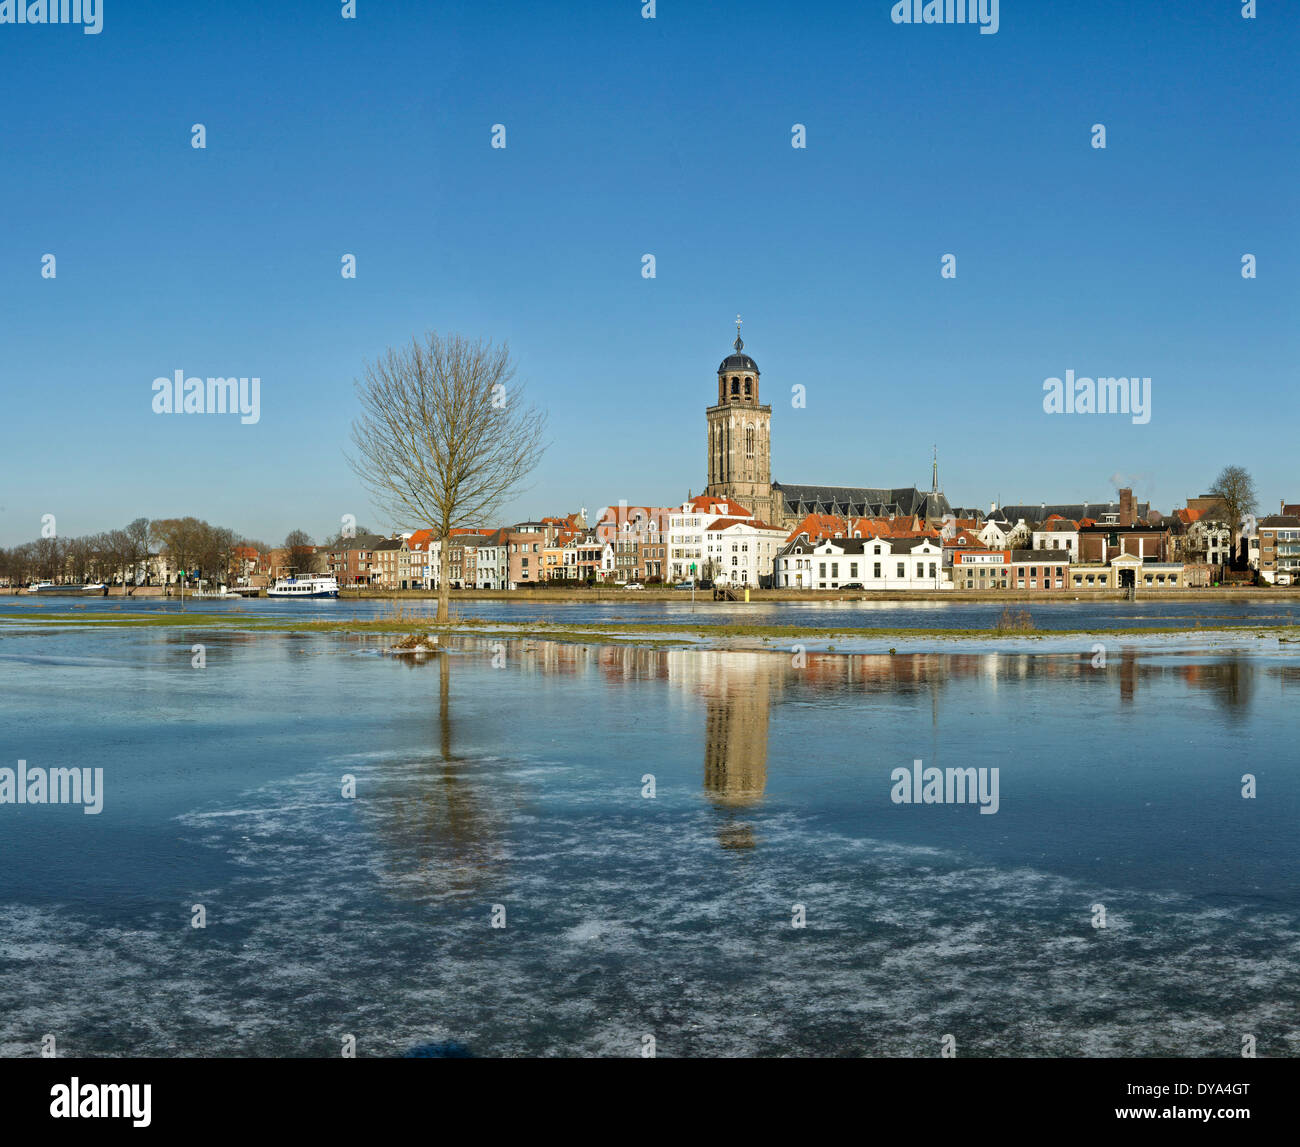 Netherlands Holland Europe Deventer Overijssel city village water winter snow ice reflections Lebuinus church river Stock Photo